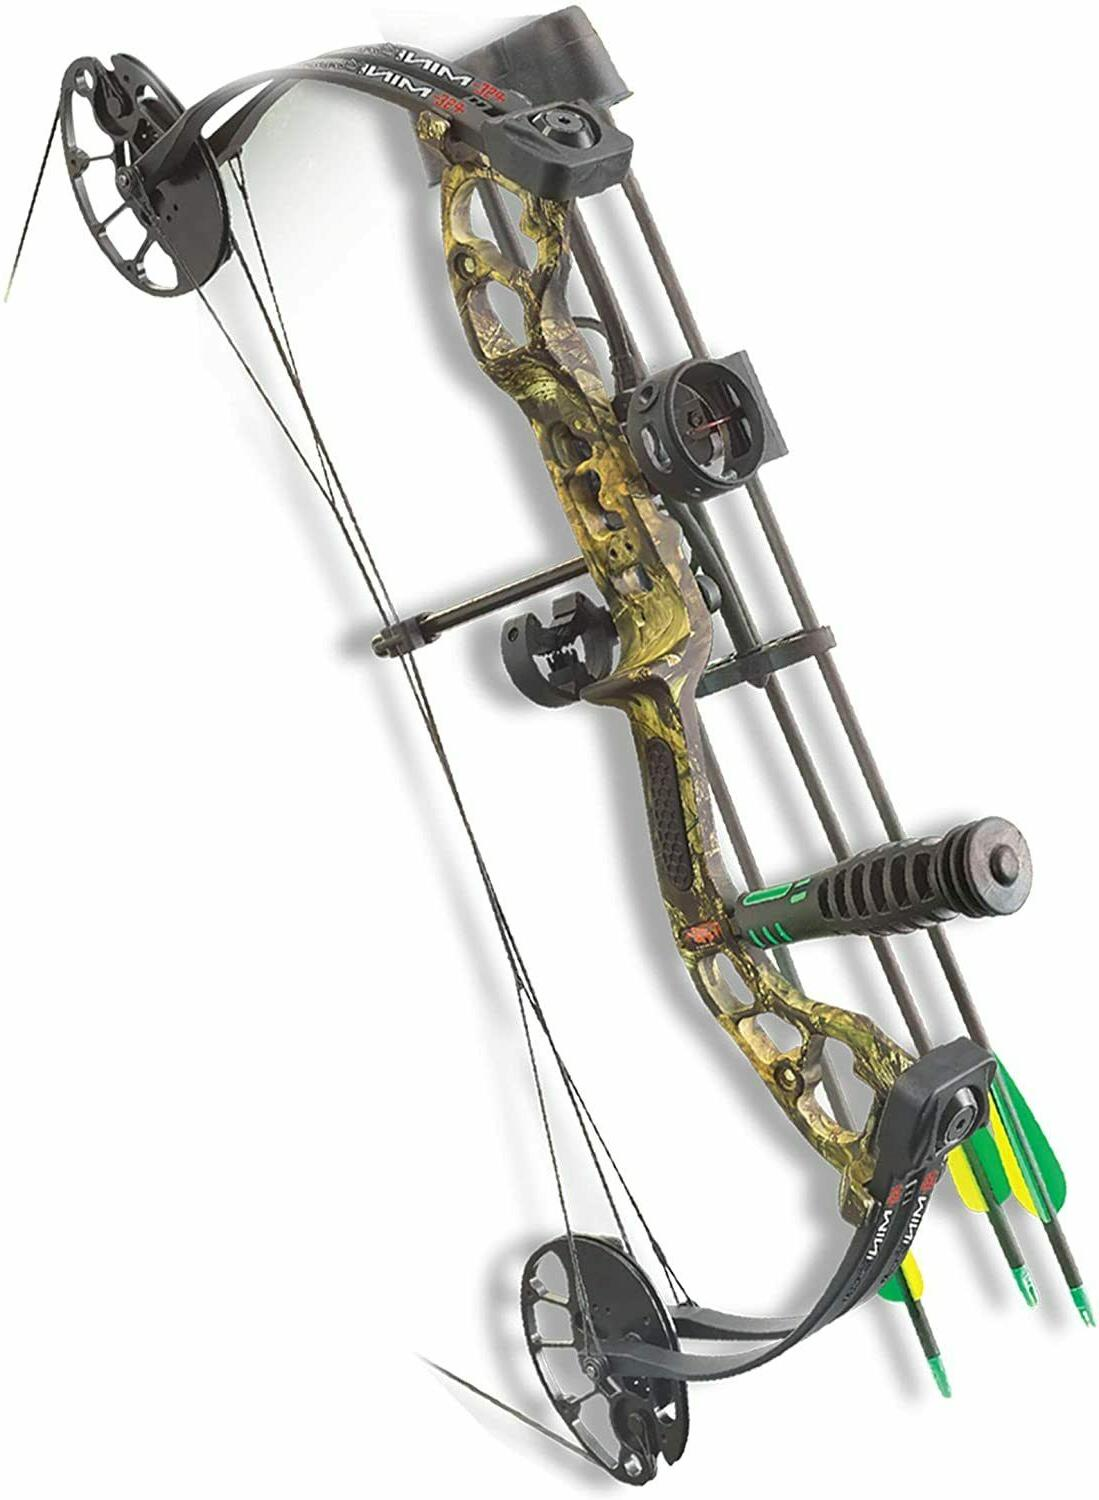 PSE Mini Burner Ready-to-Shoot Youth Compound Right Hand